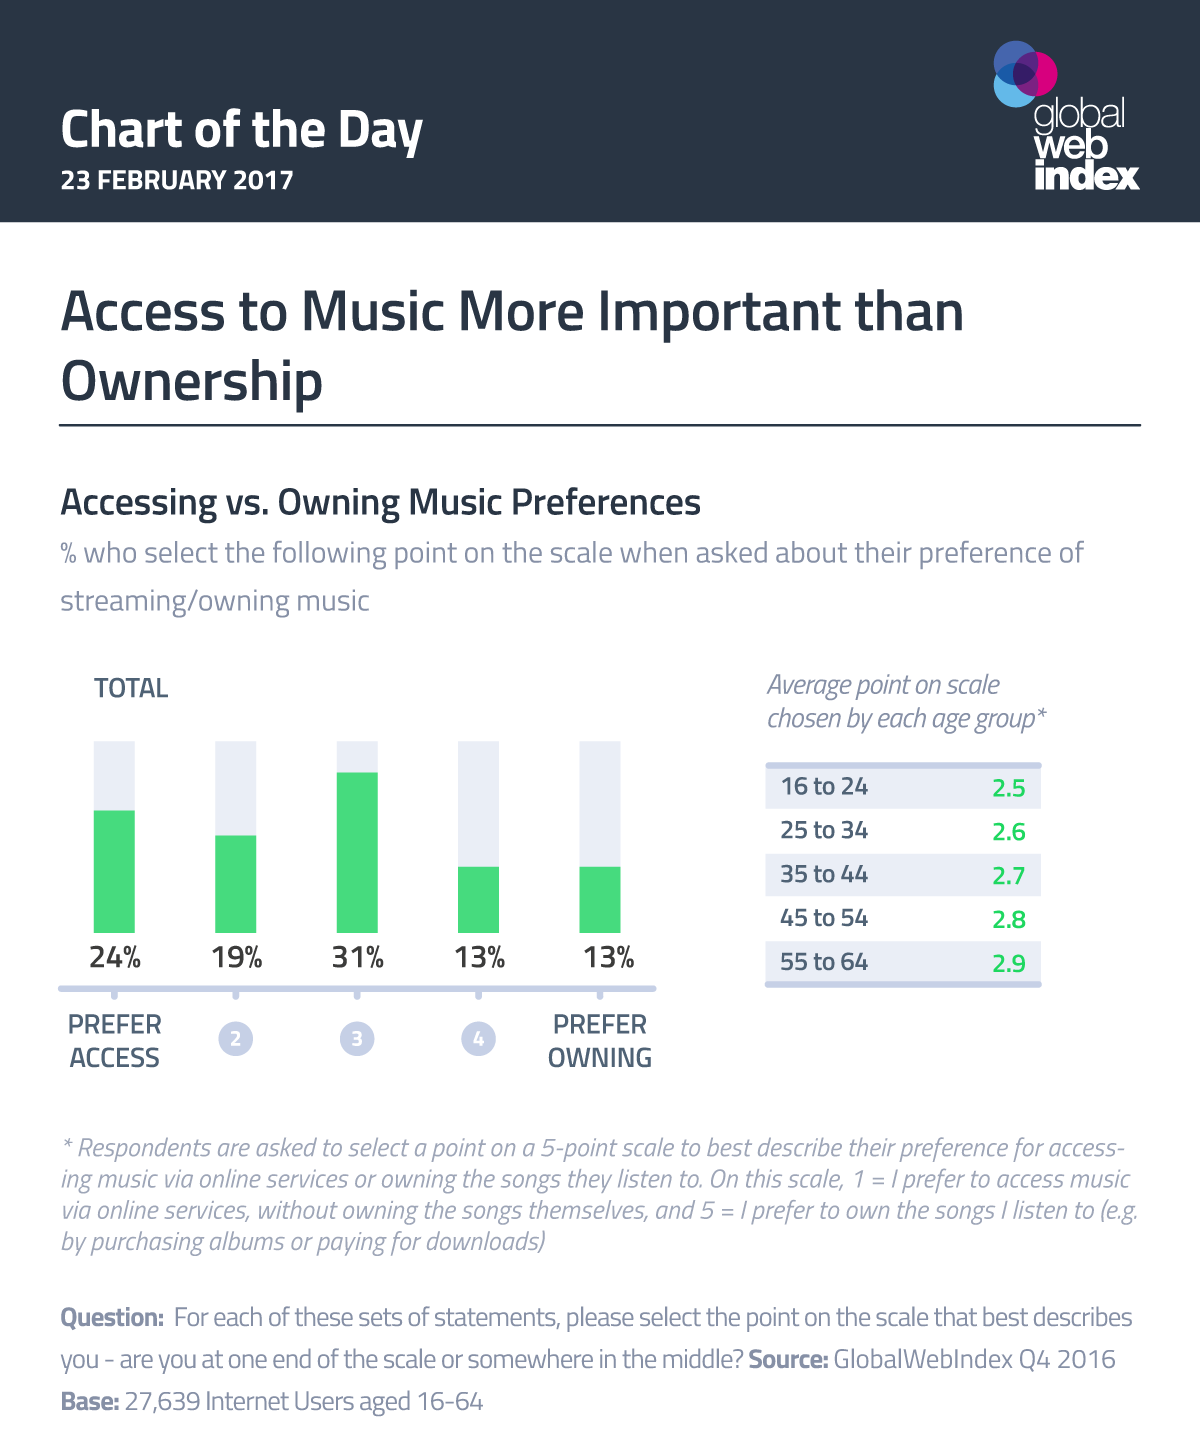 Access to Music More Important than Ownership